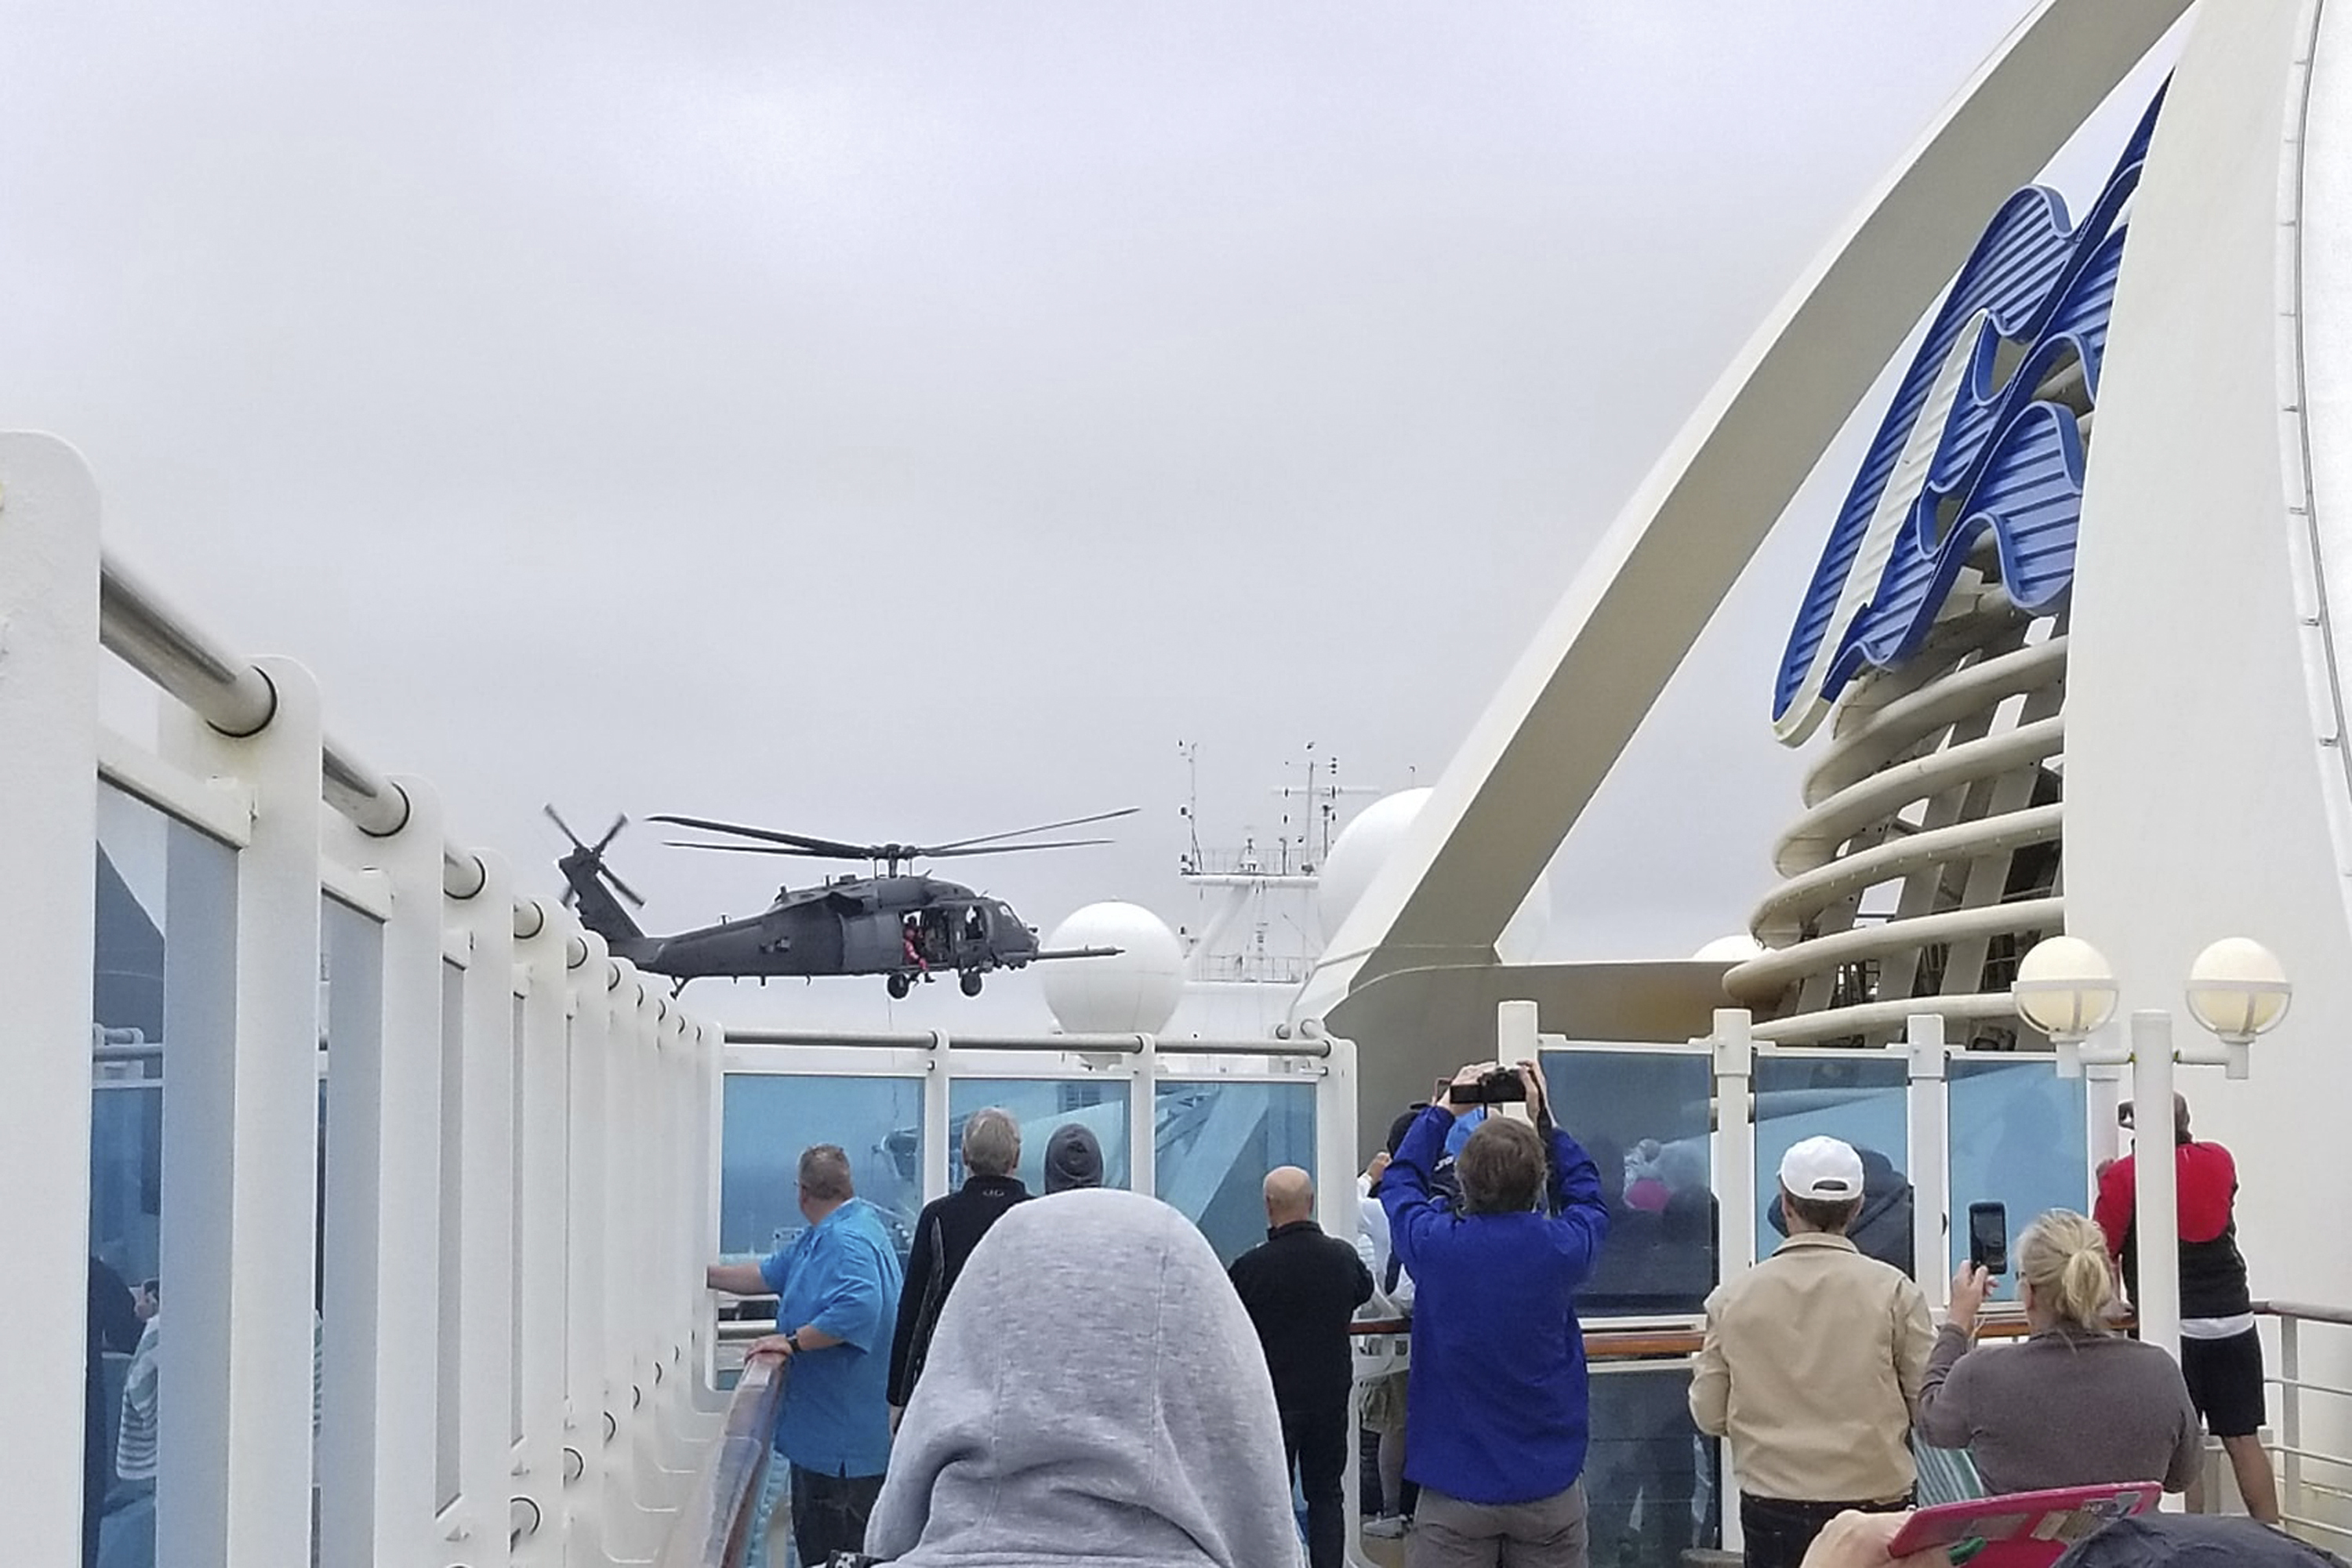 In this photo provided by Michele Smith, passengers look on as a National Guard helicopter hovers above the Grand Princess cruise ship off the California coast on Thursday.